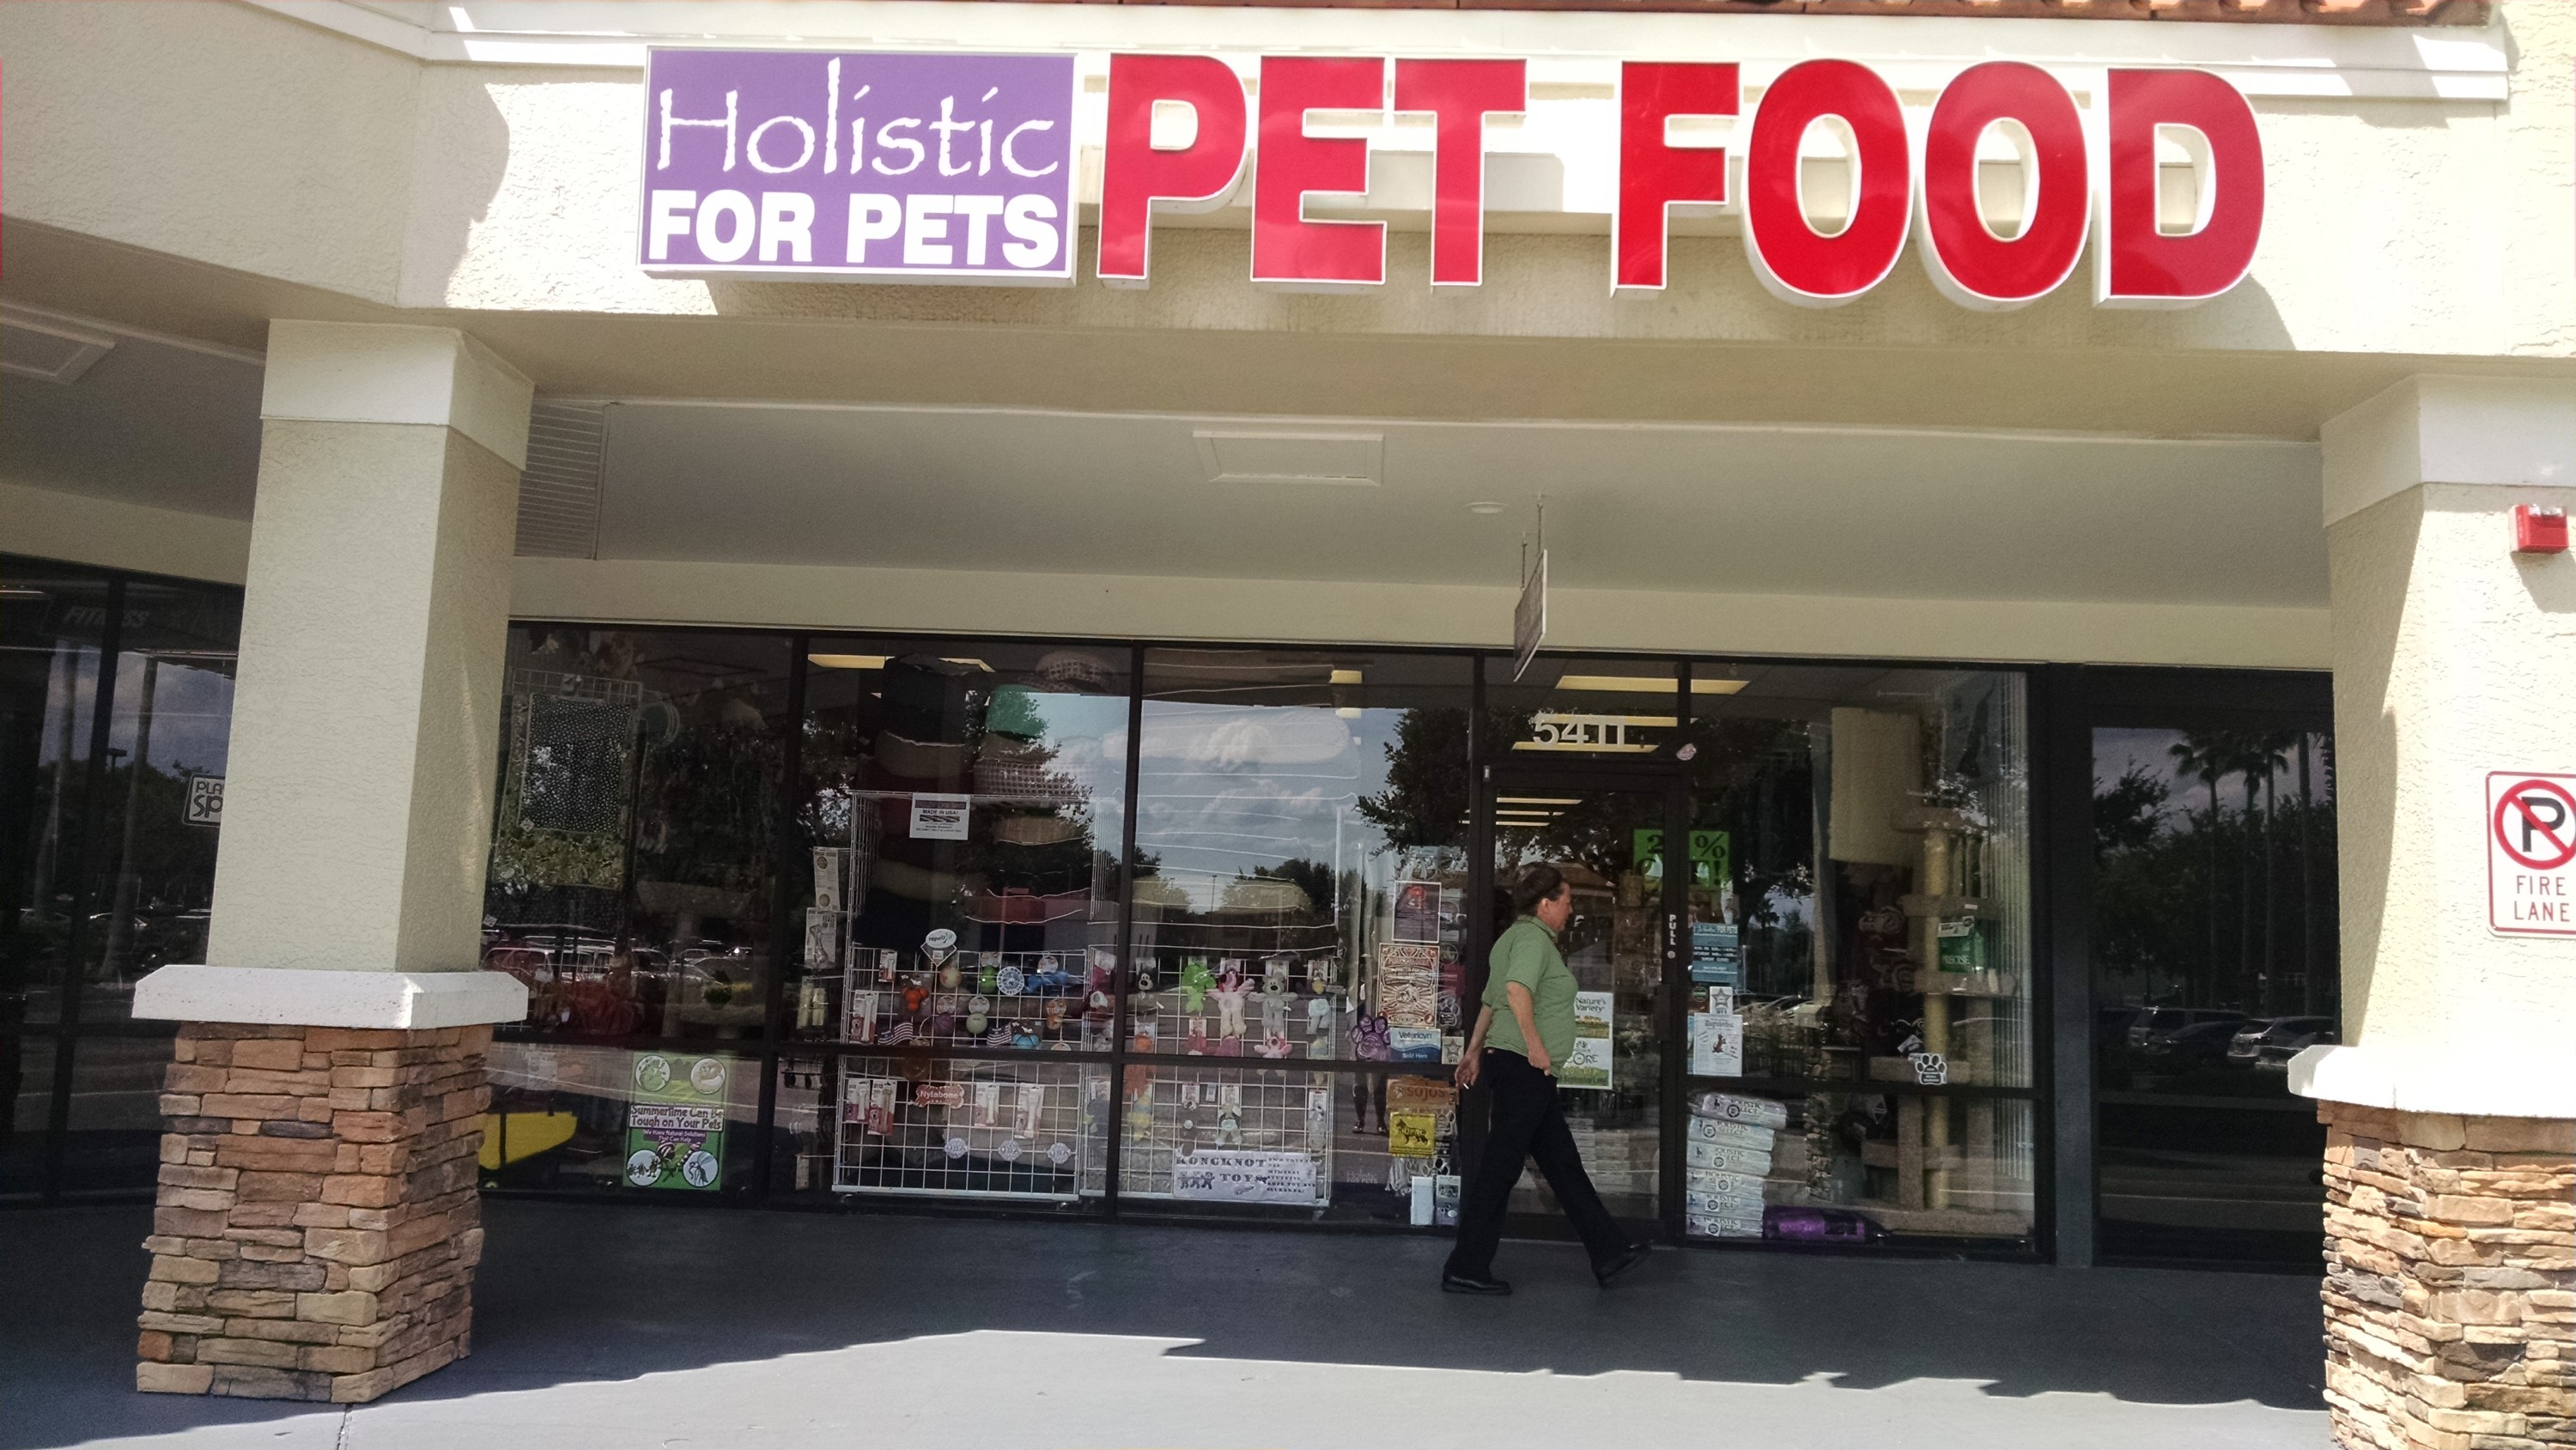 Holistic for Pets